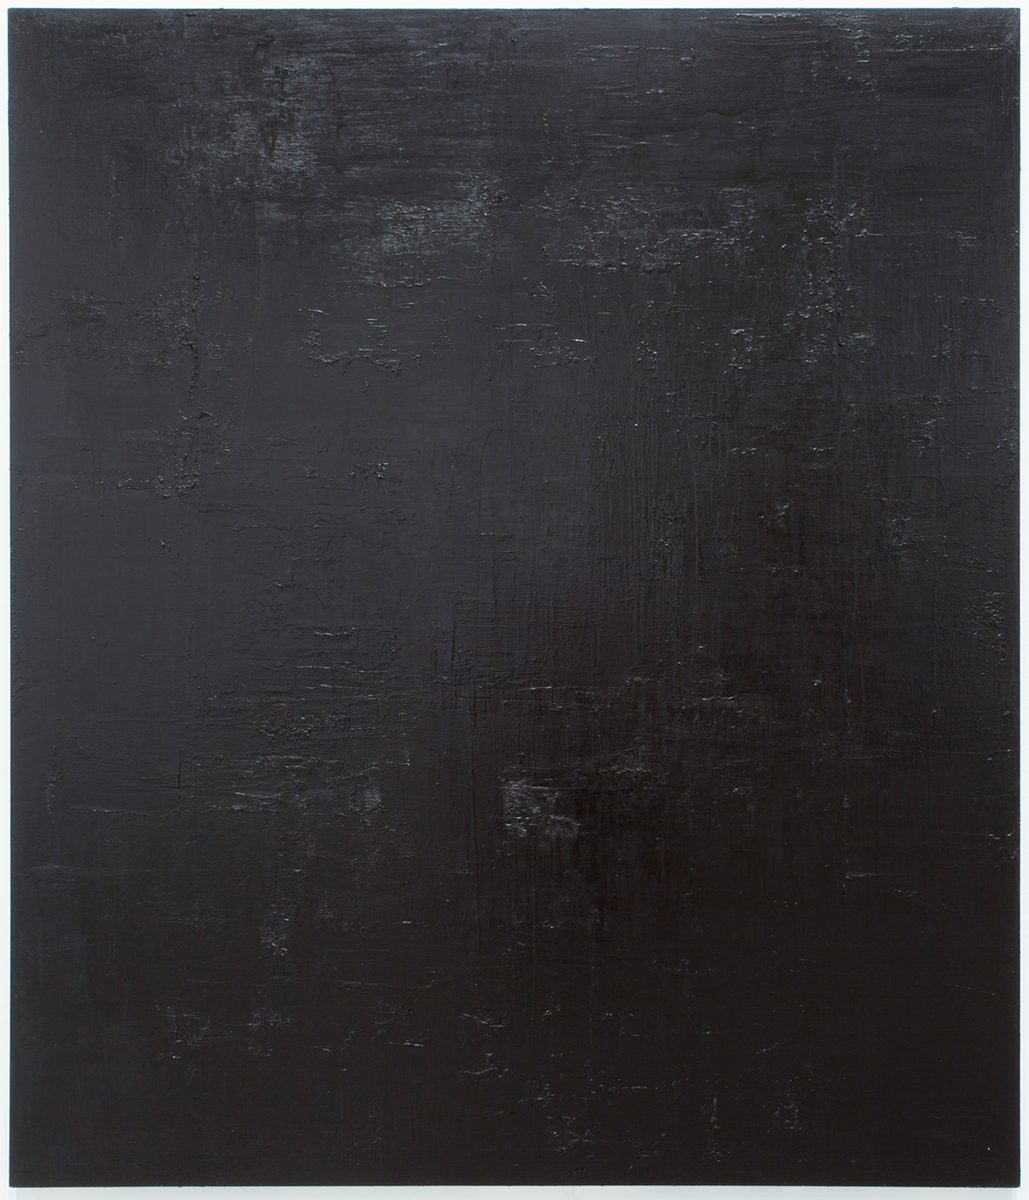 Untitled black monochrome painting (7.10.PBk9.CI77267/PBk11.Fe3O4) from the Frequency10. series. Oil, grit, graphite on canvas, 213.36cm x 182.88cm (84 inches x 72 inches), 2016-2017.